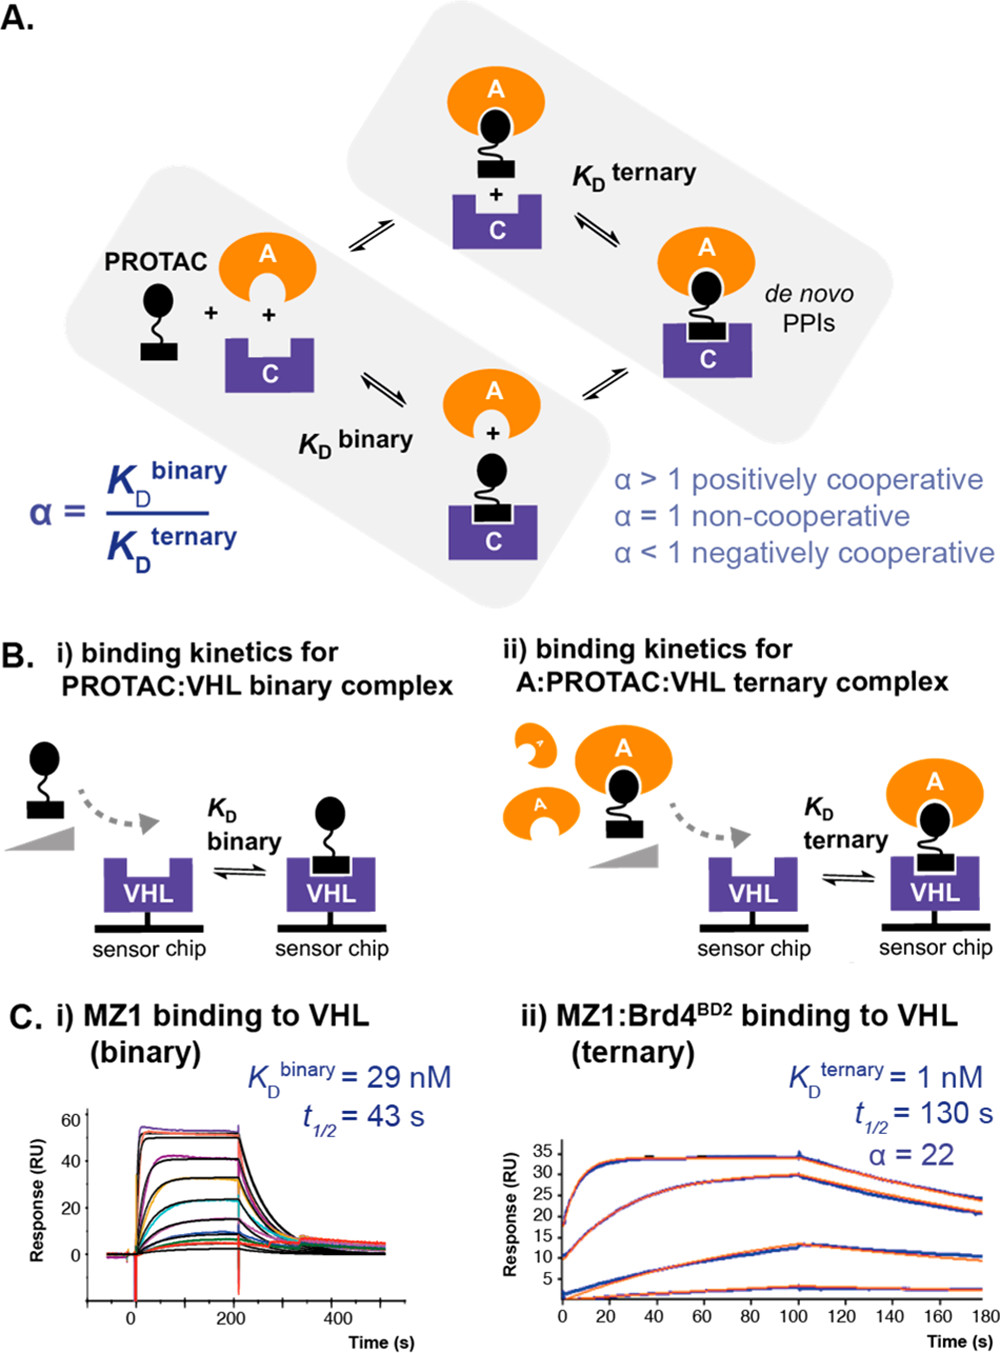 Figure 1. Schematic and binding data illustrating our SPR approach for measuring binding kinetics and determining cooperativity (α) for PROTAC binary and ternary complex formation.